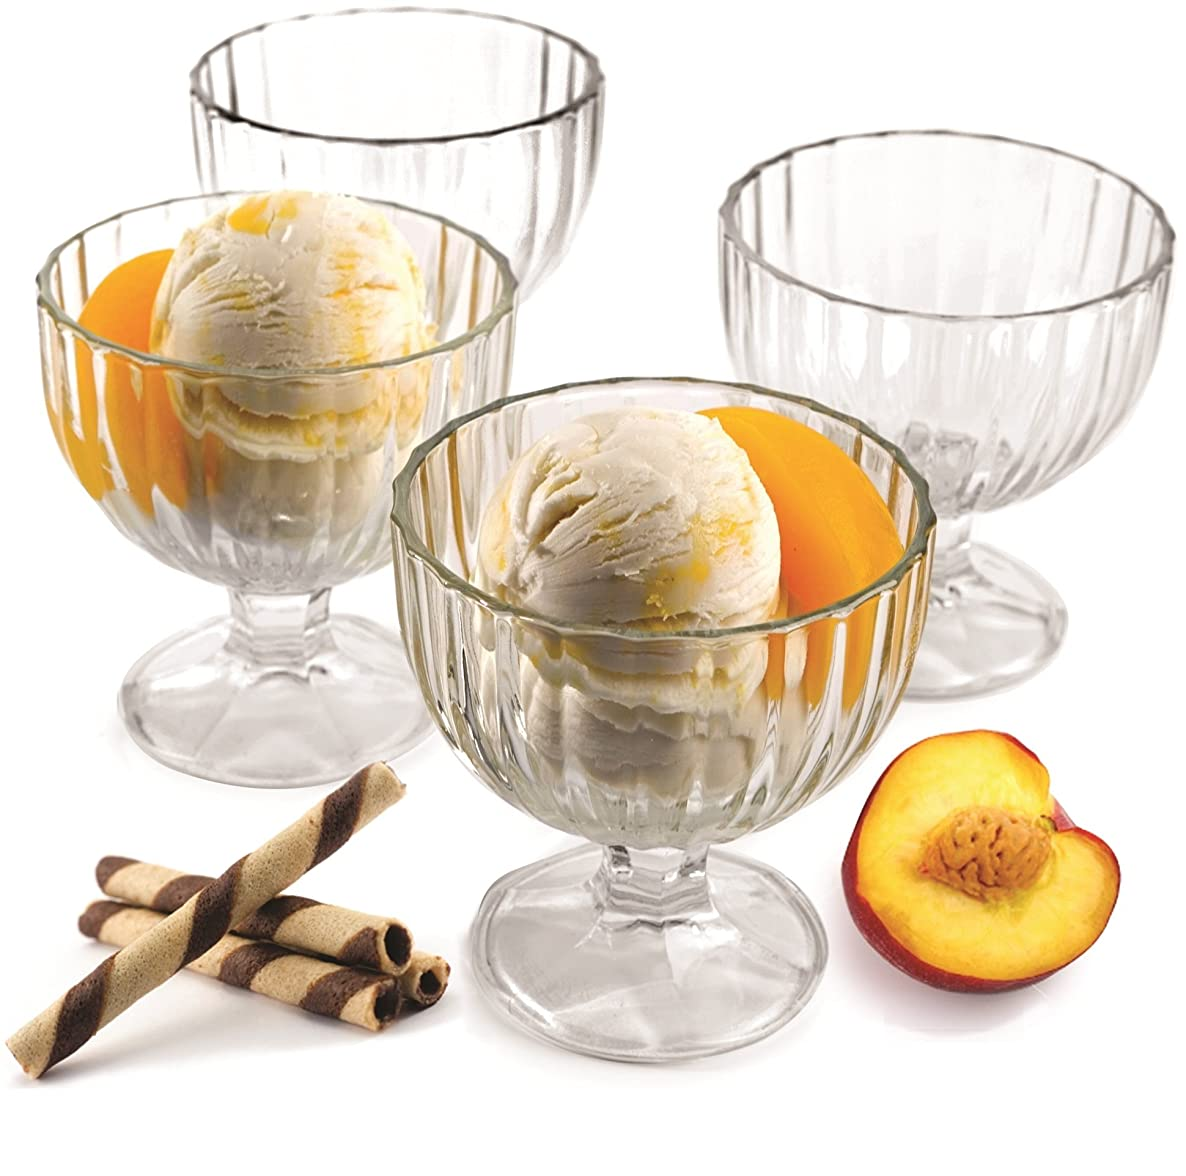 Circleware Passion Footed Glass Ice Cream Dessert Dish Bowl, Set of 4, 9 Ounce Each, Limited Edition Glassware Serveware